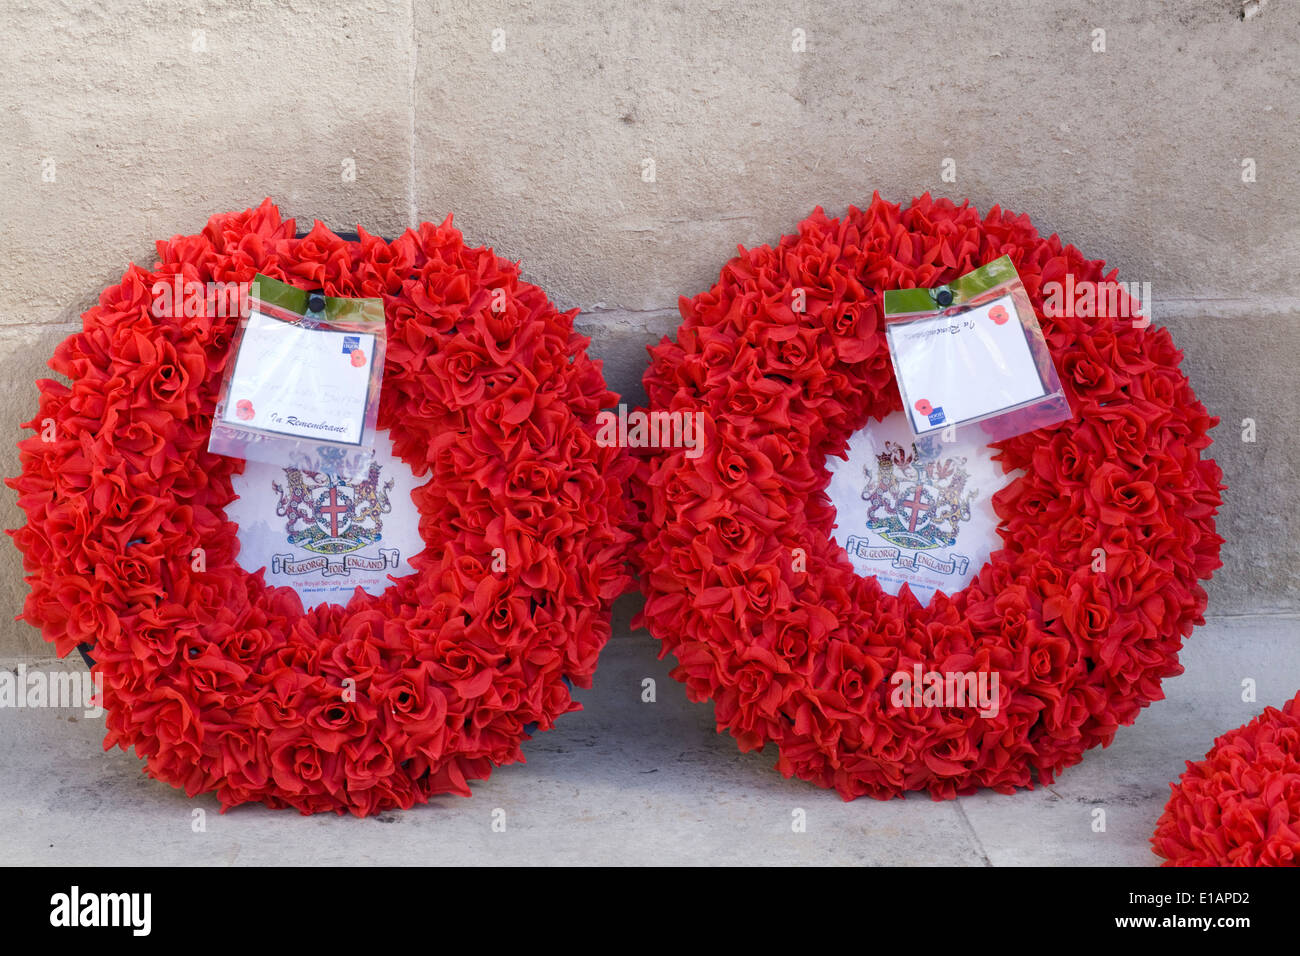 Poppy Wreaths on a gate outside 10 Downing Street London England - Stock Image